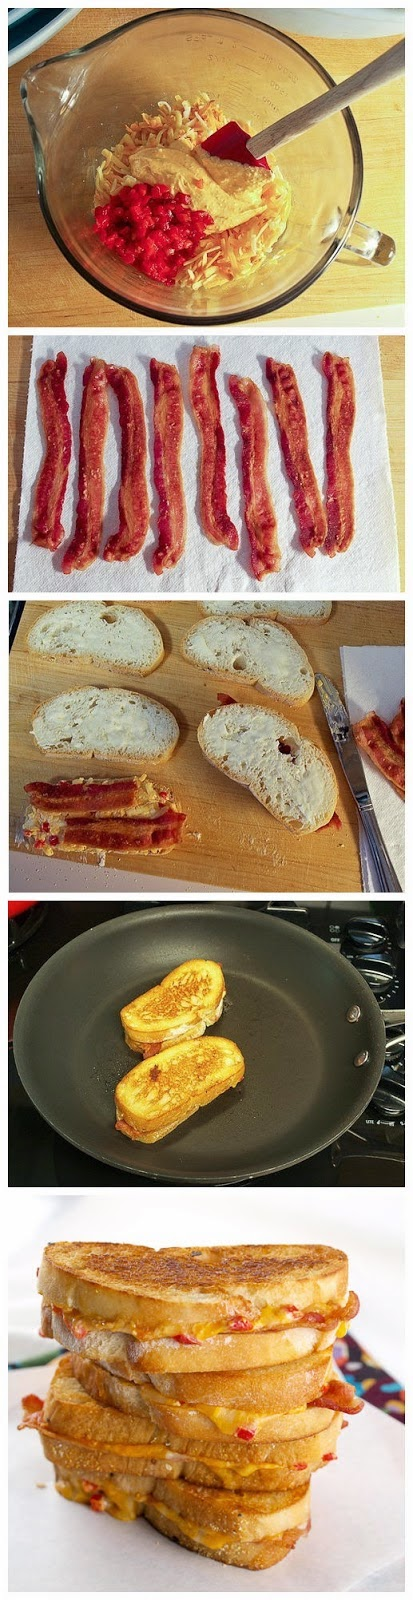 Four-Cheese Grilled Pimento Cheese and Bacon Sandwiches